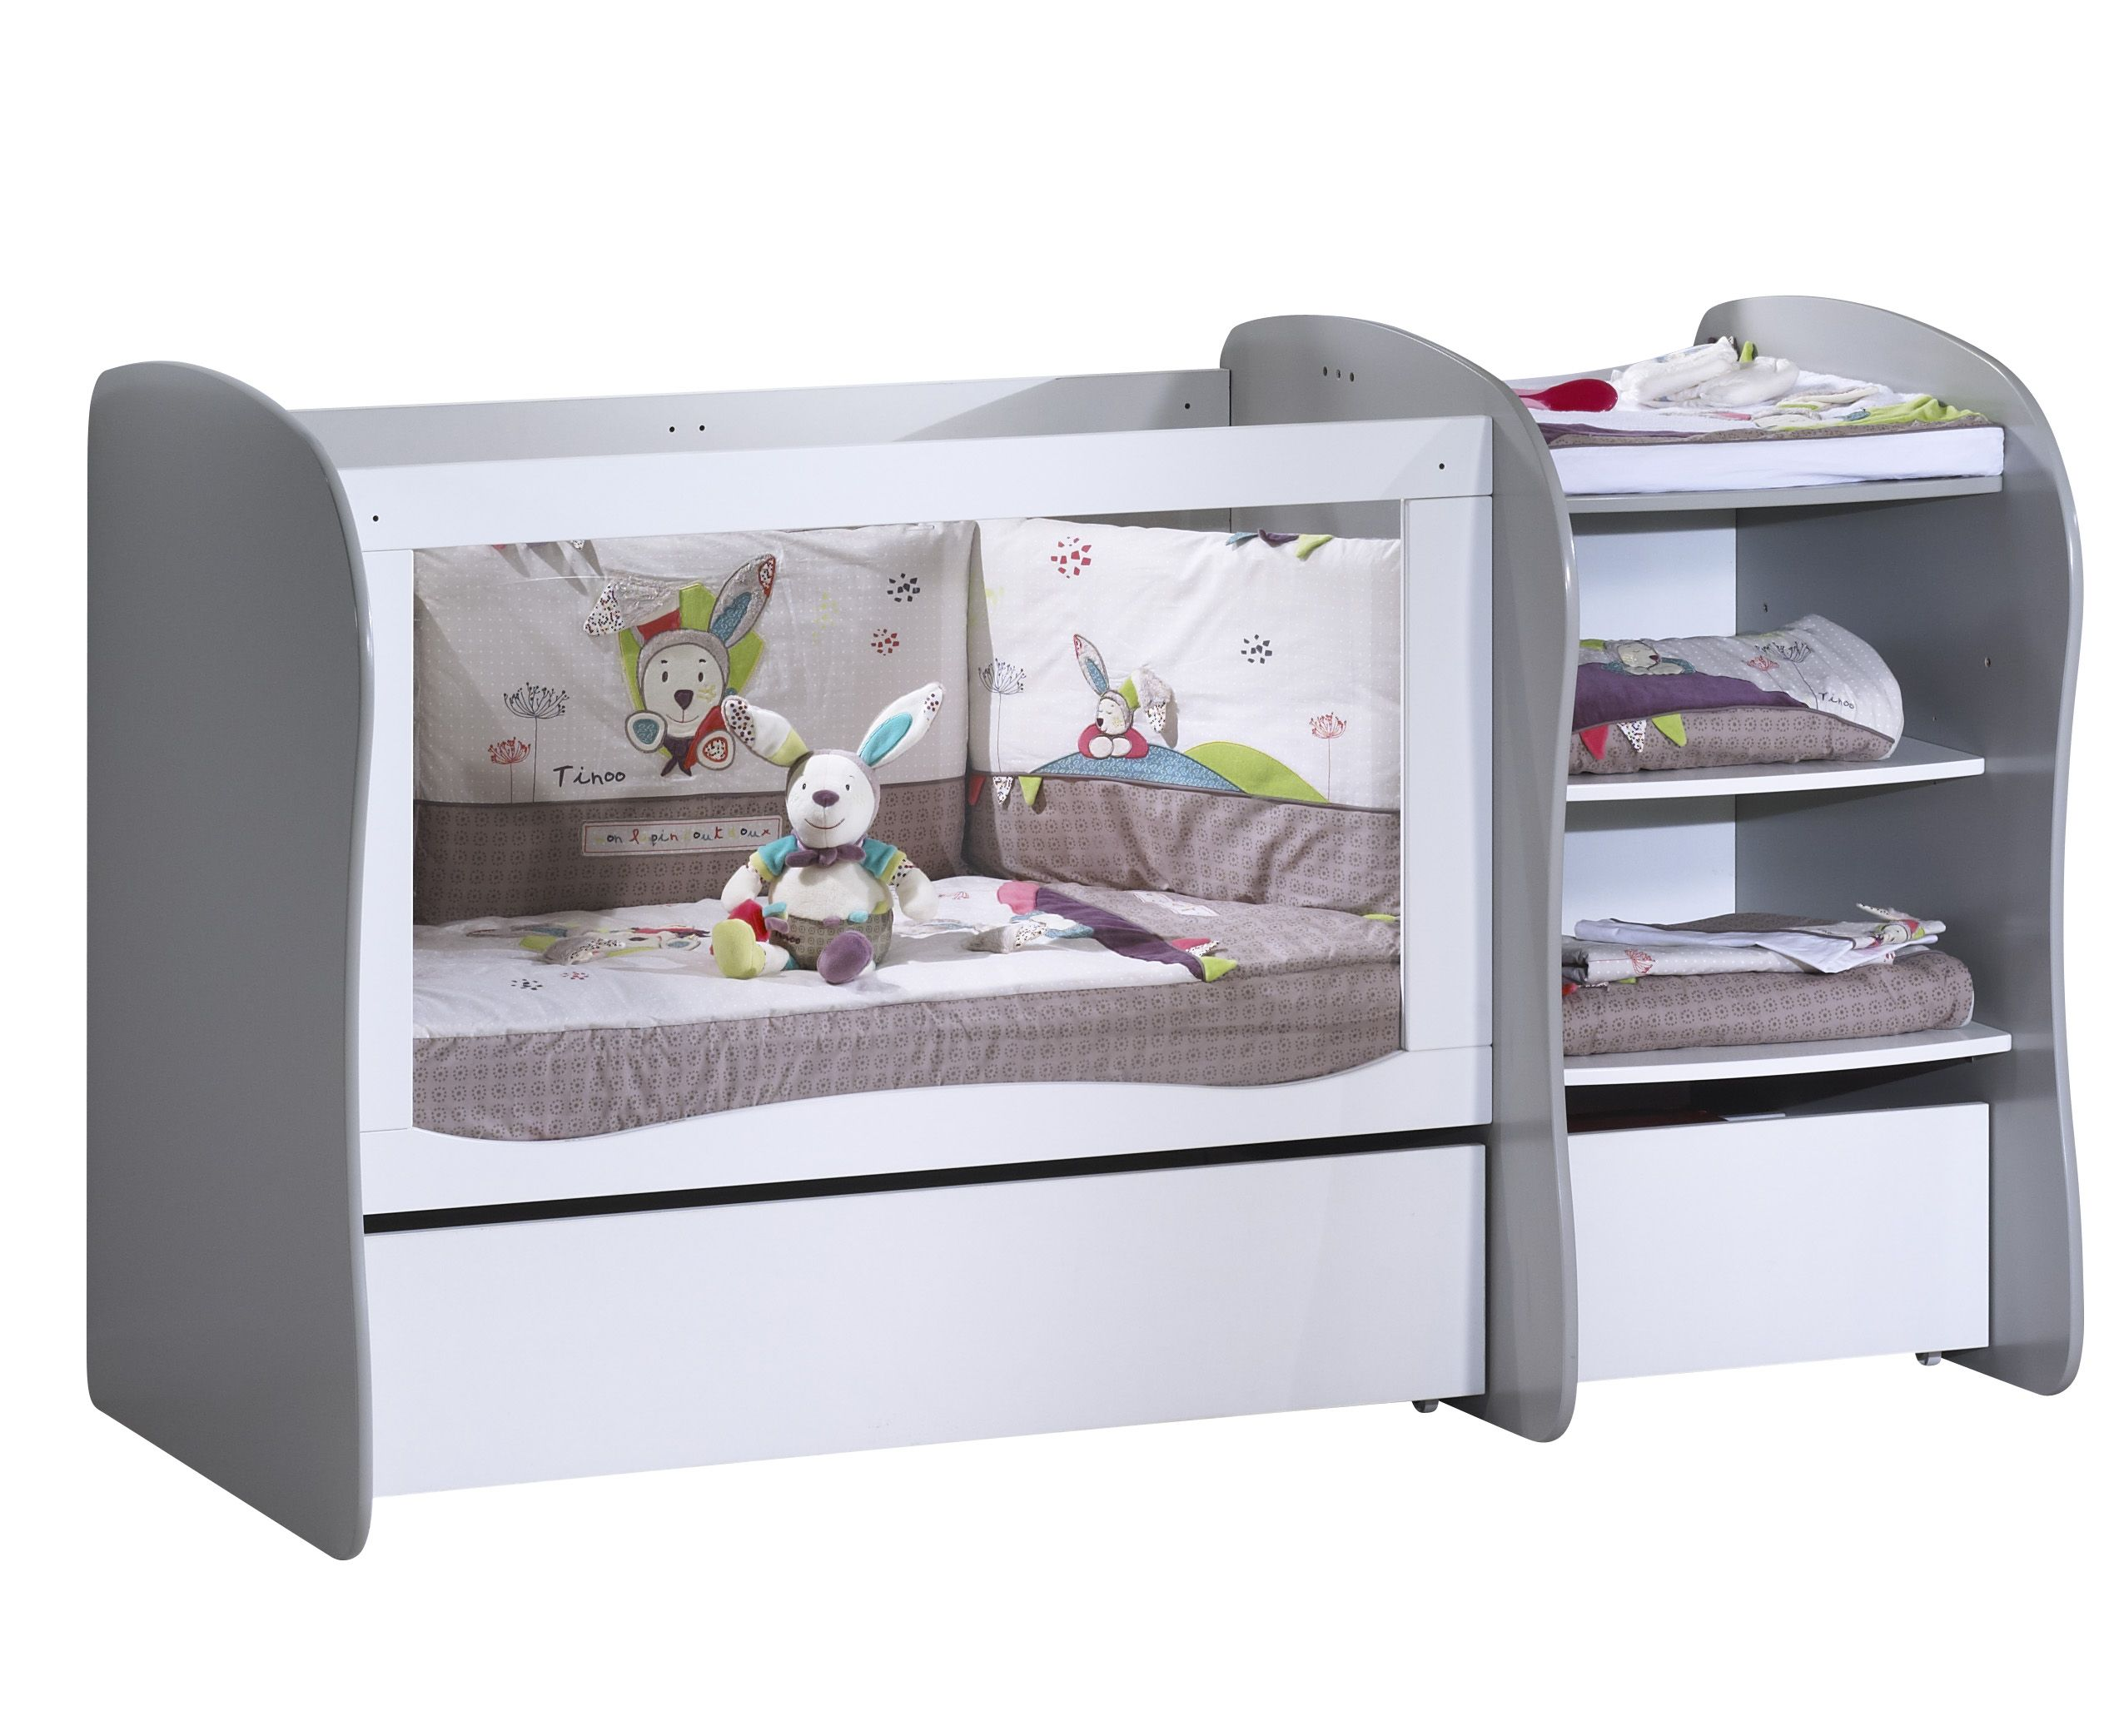 Lit Chambre Transformable 120x60 Avec Galerie Fixe Dispositif A Langer Inclus Toddler Bed Baby Doll Nursery Bed